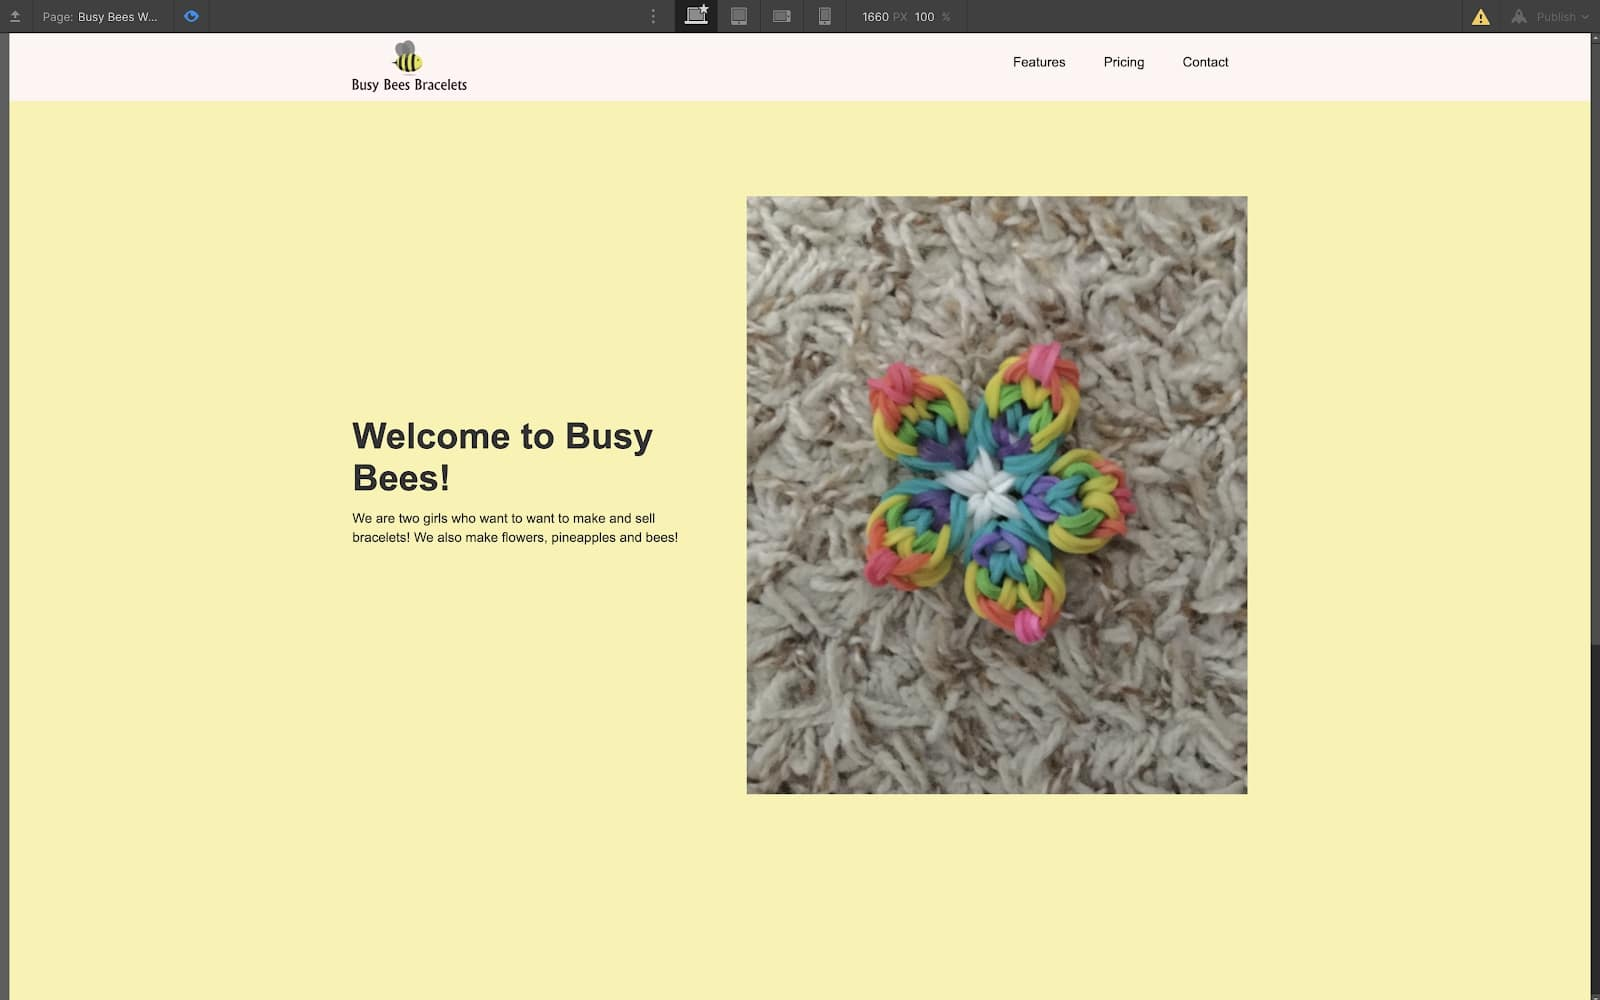 busy bees bracelets